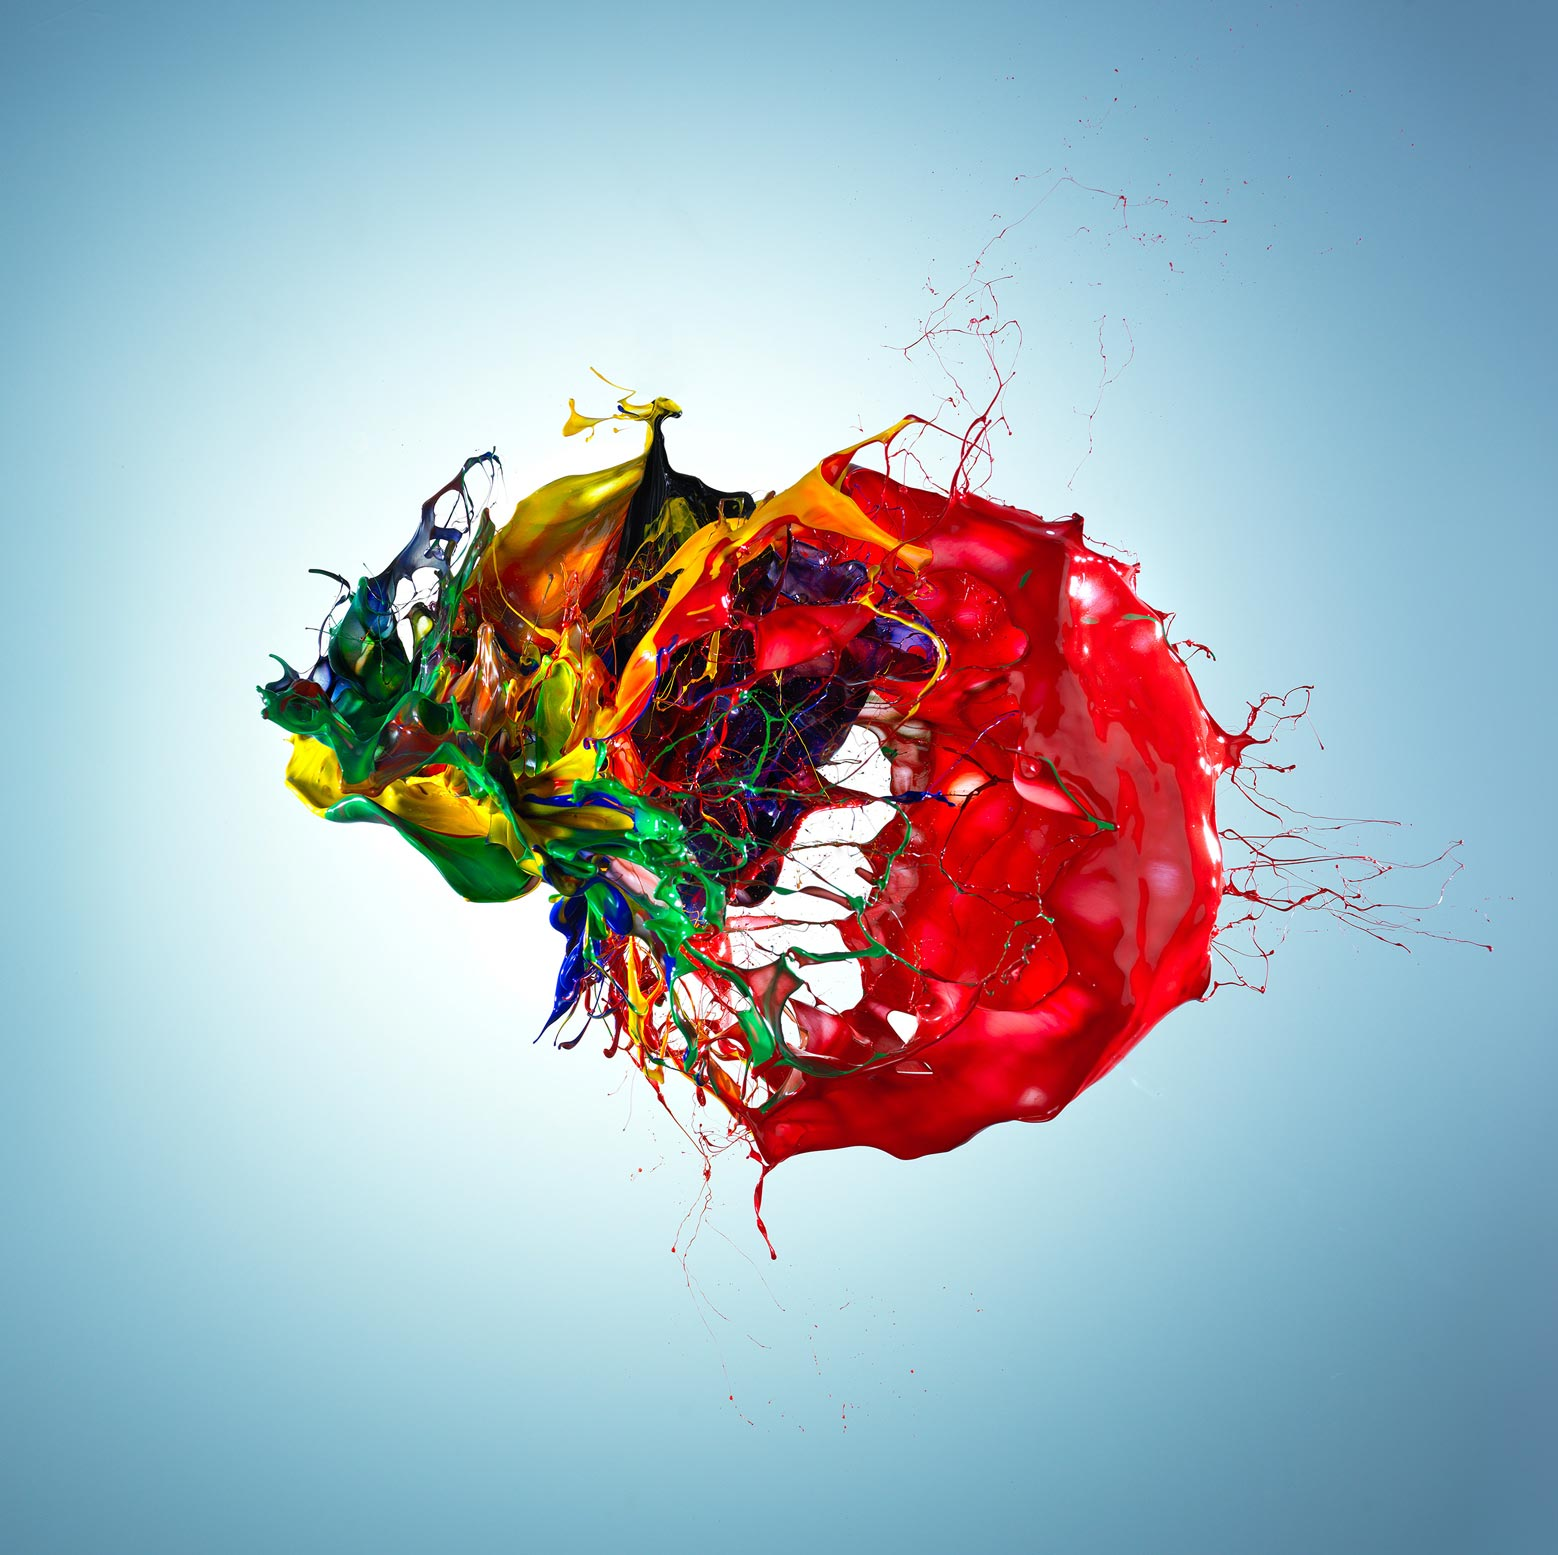 Explosion of colourful paint on a graduated blue background